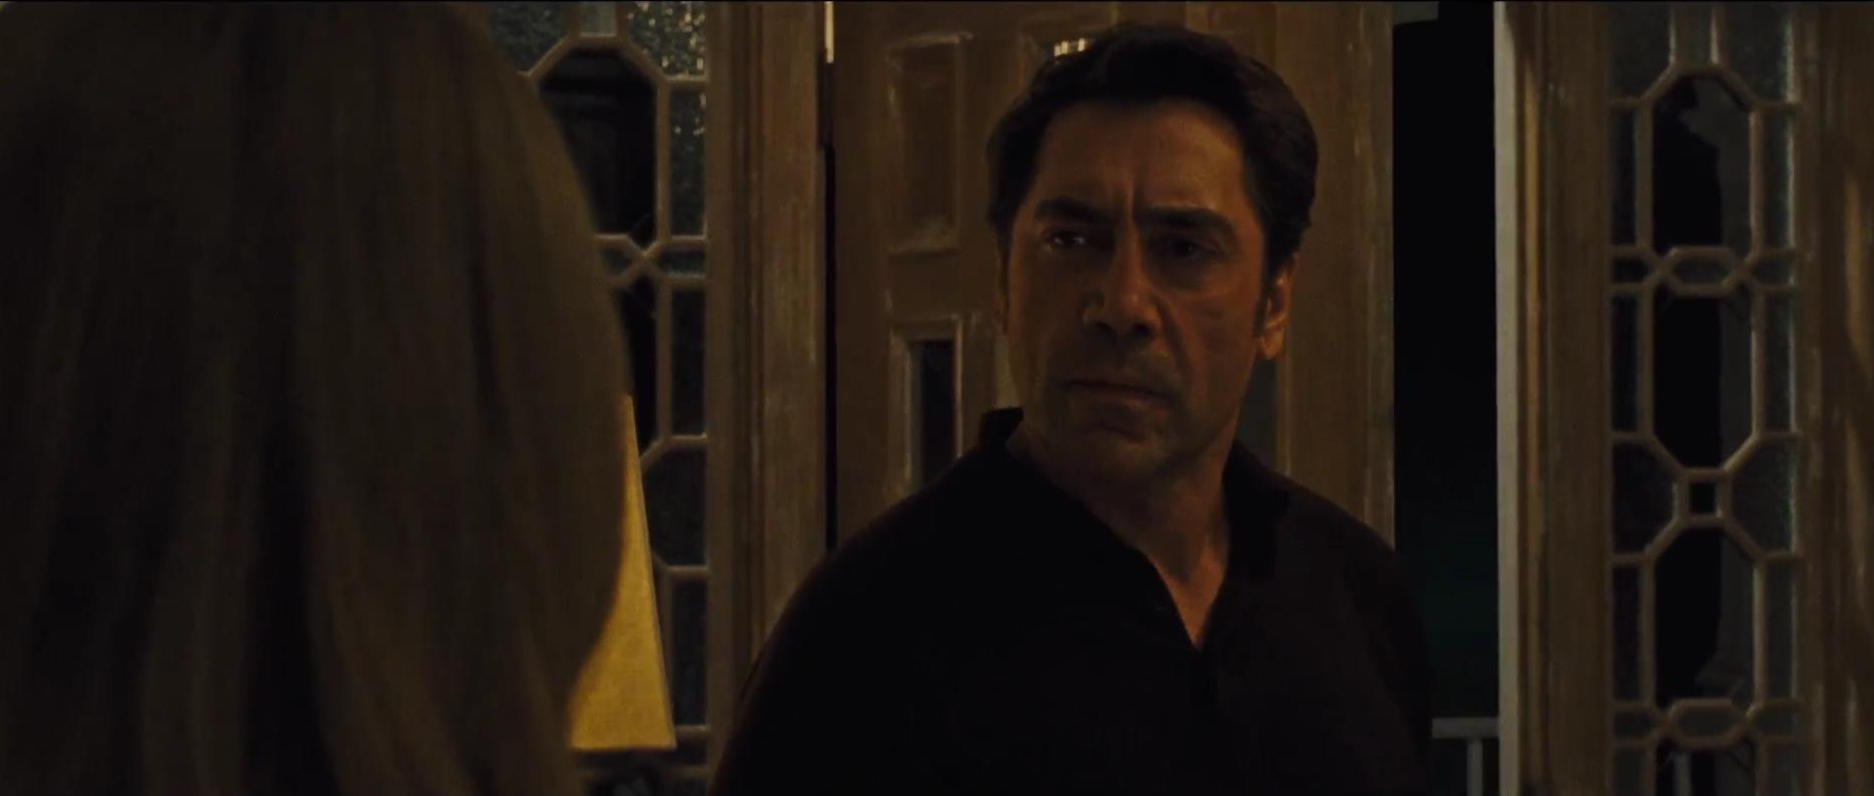 javier-bardem-in-mother-2017-large-picture.jpg